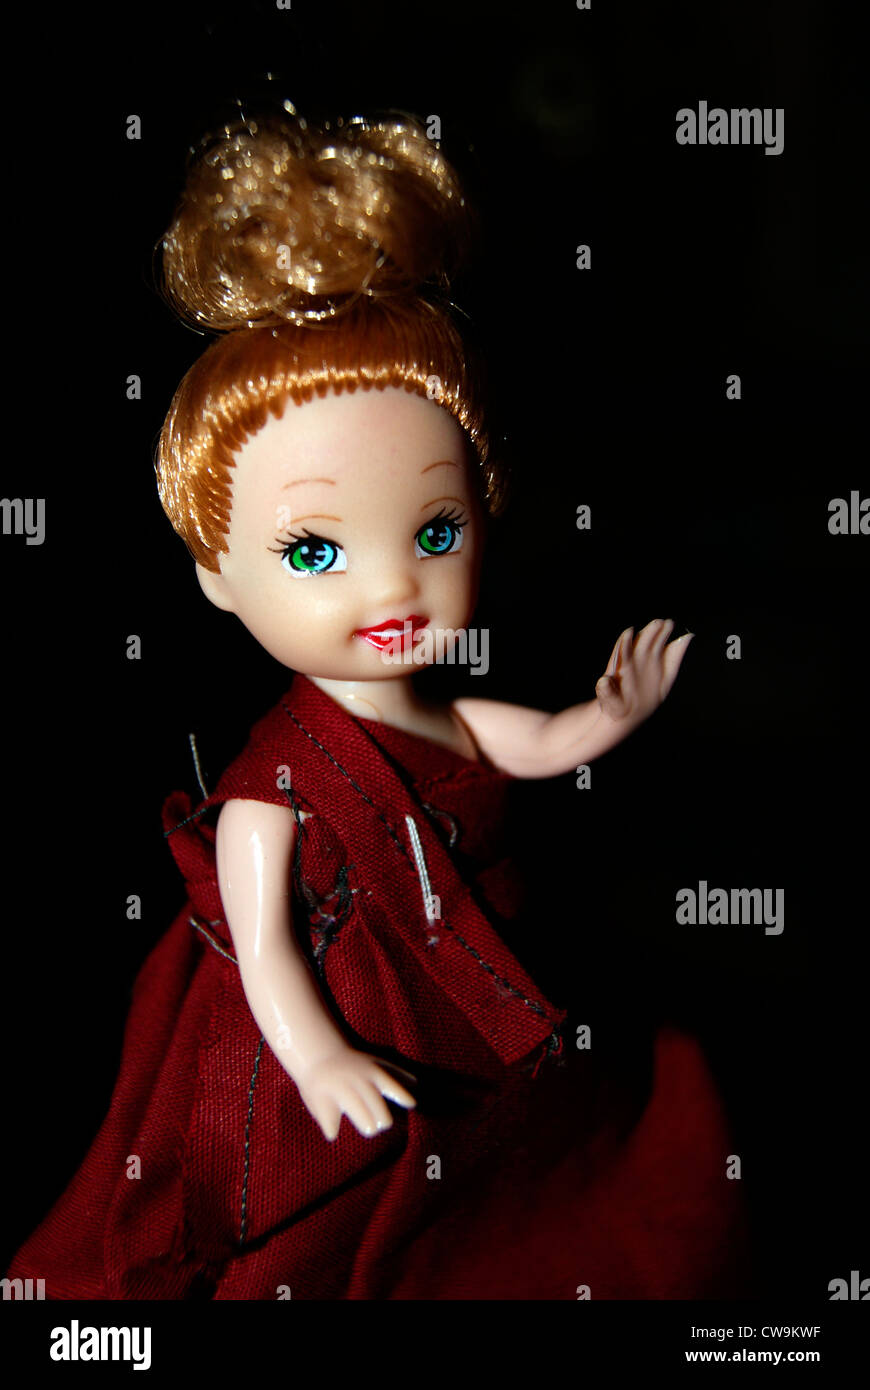 Cute Smiling Barbie Doll Girl Saying Hai Hello With Hands